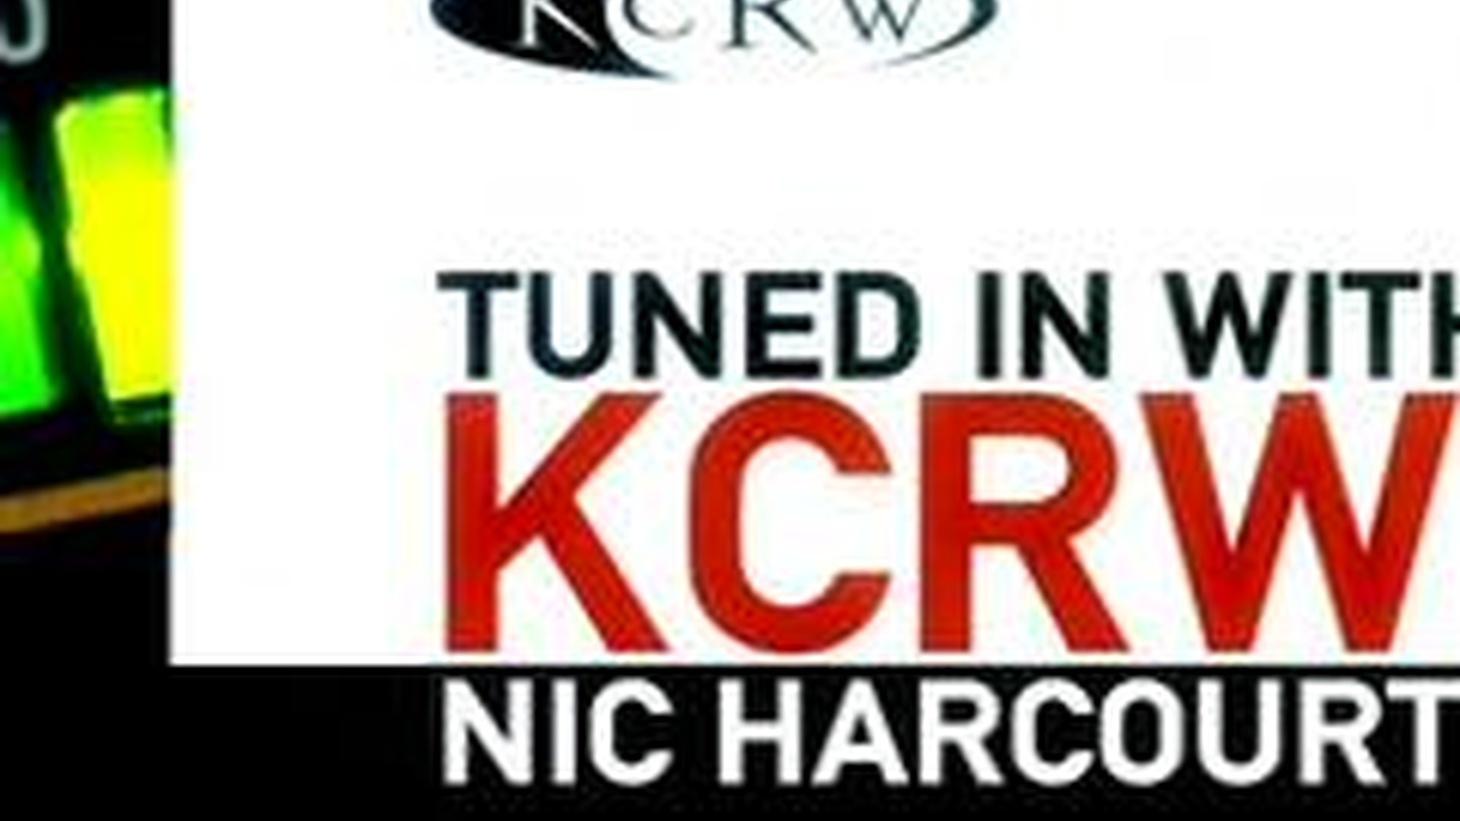 """In this week's episode of Tuned In With Nic Harcourt, Nic previews more of today's top new music including Darker My Love's new album """"2,"""" The Virgins (THE VIRGINS), Mates of State (REARRANGE US), Cold War Kids (LOYALTY TO LOYALTY) and Gnarls Barkley (THE ODD COUPLE)."""